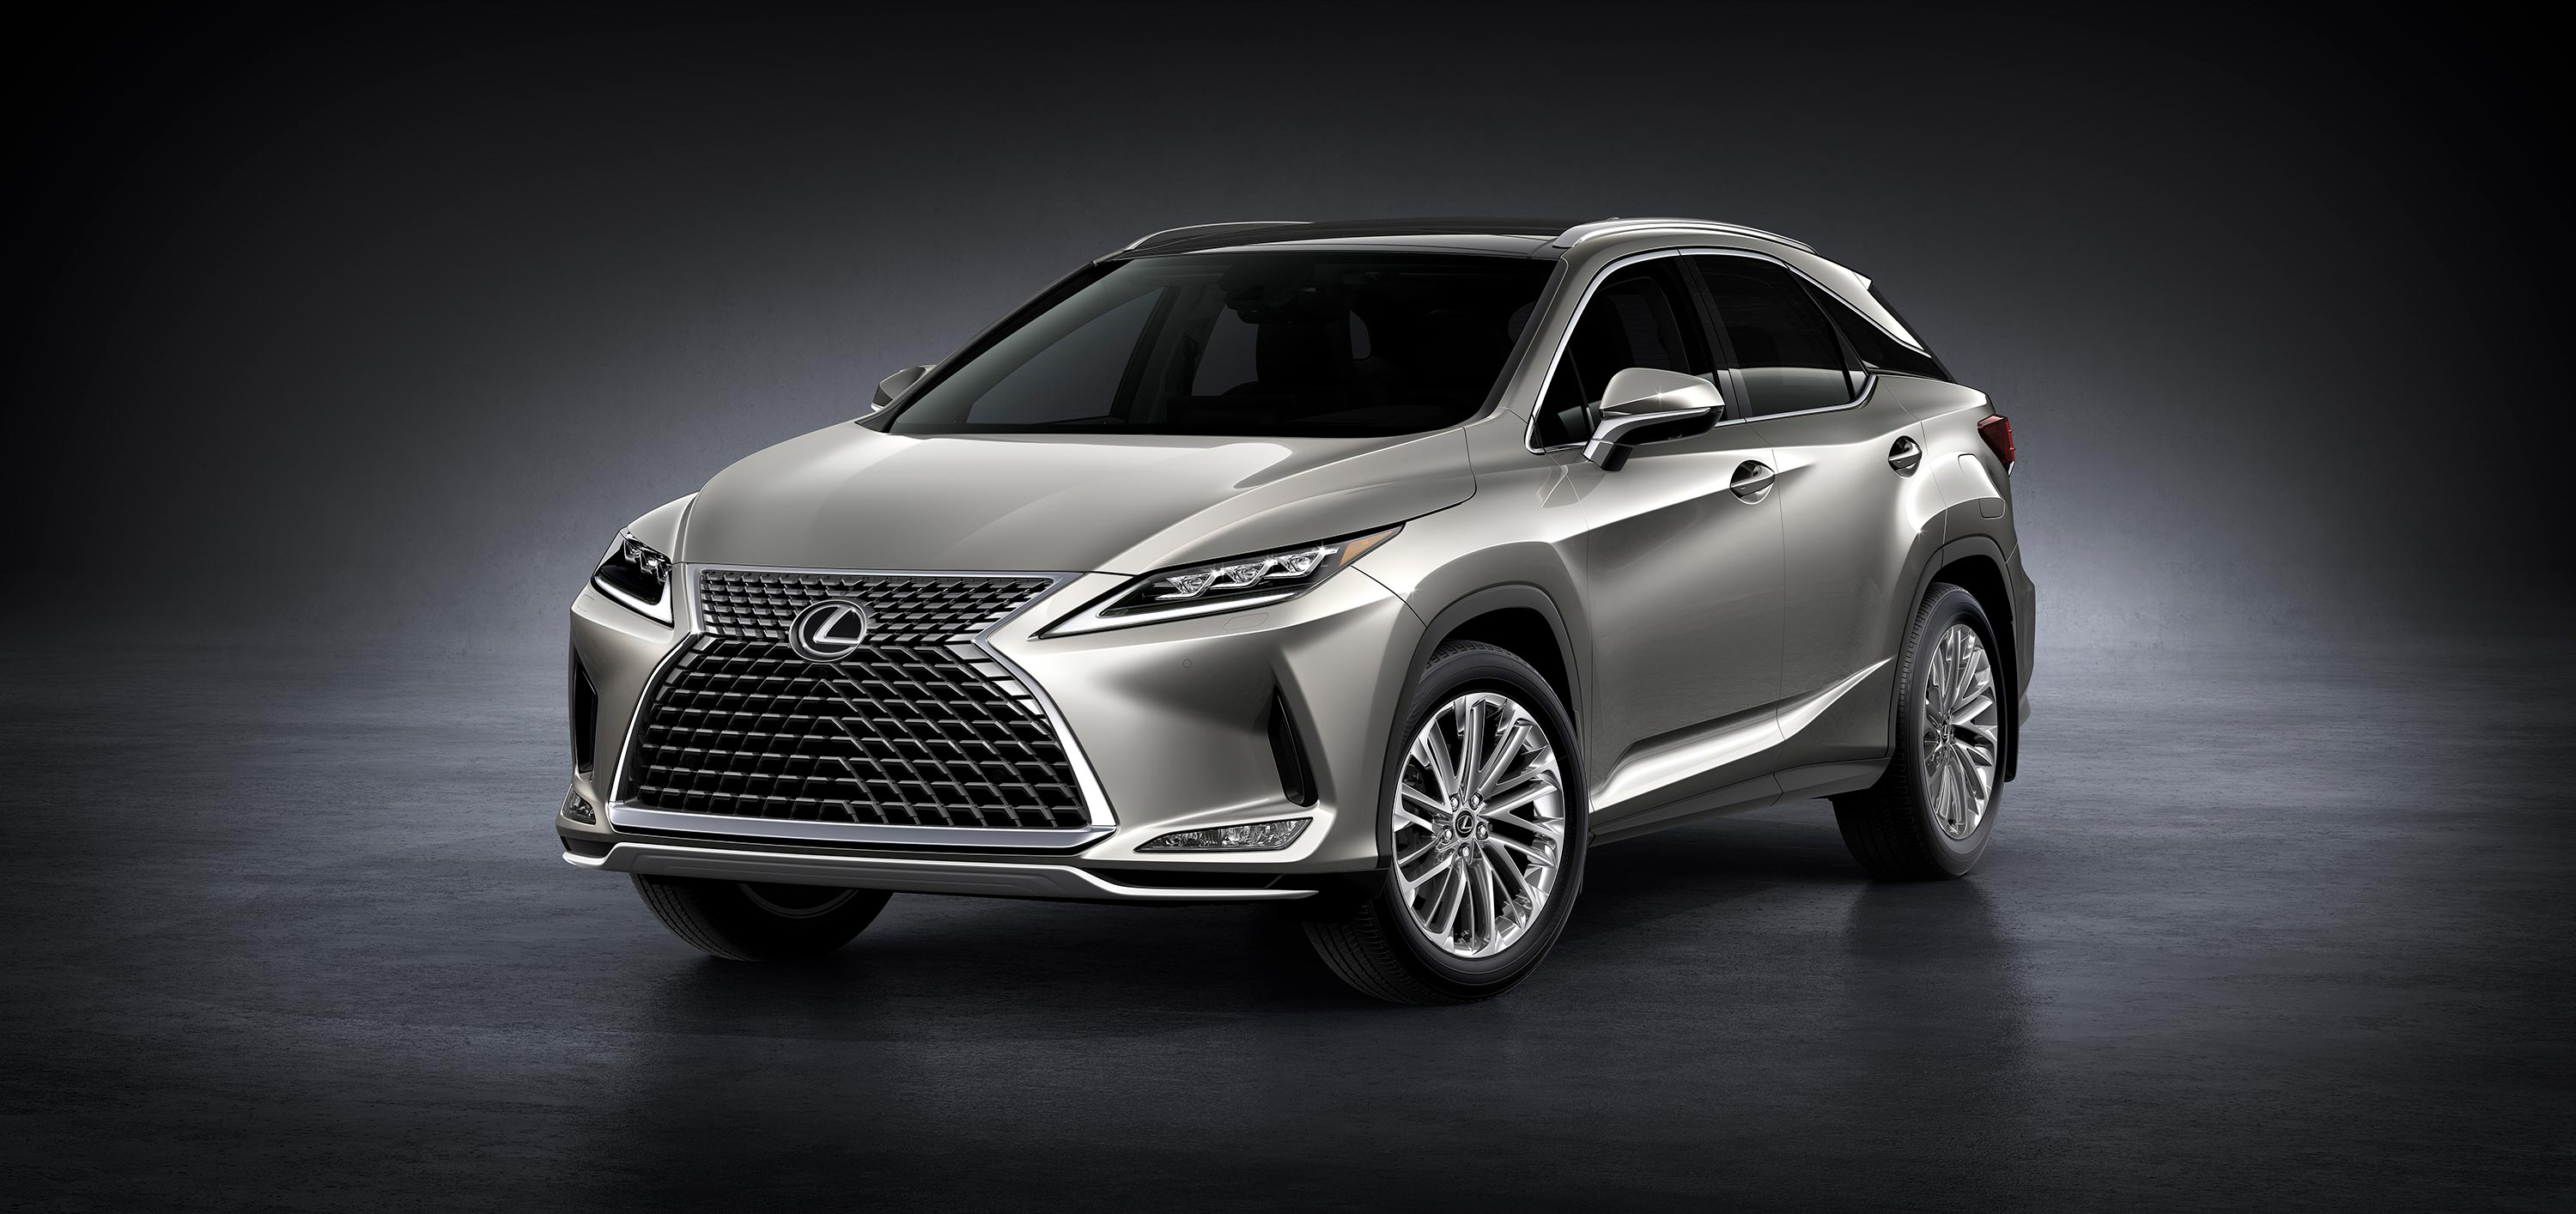 New Lexus Rx >> Photo Gallery: The Updated 2020 Lexus RX & RX F SPORT ...